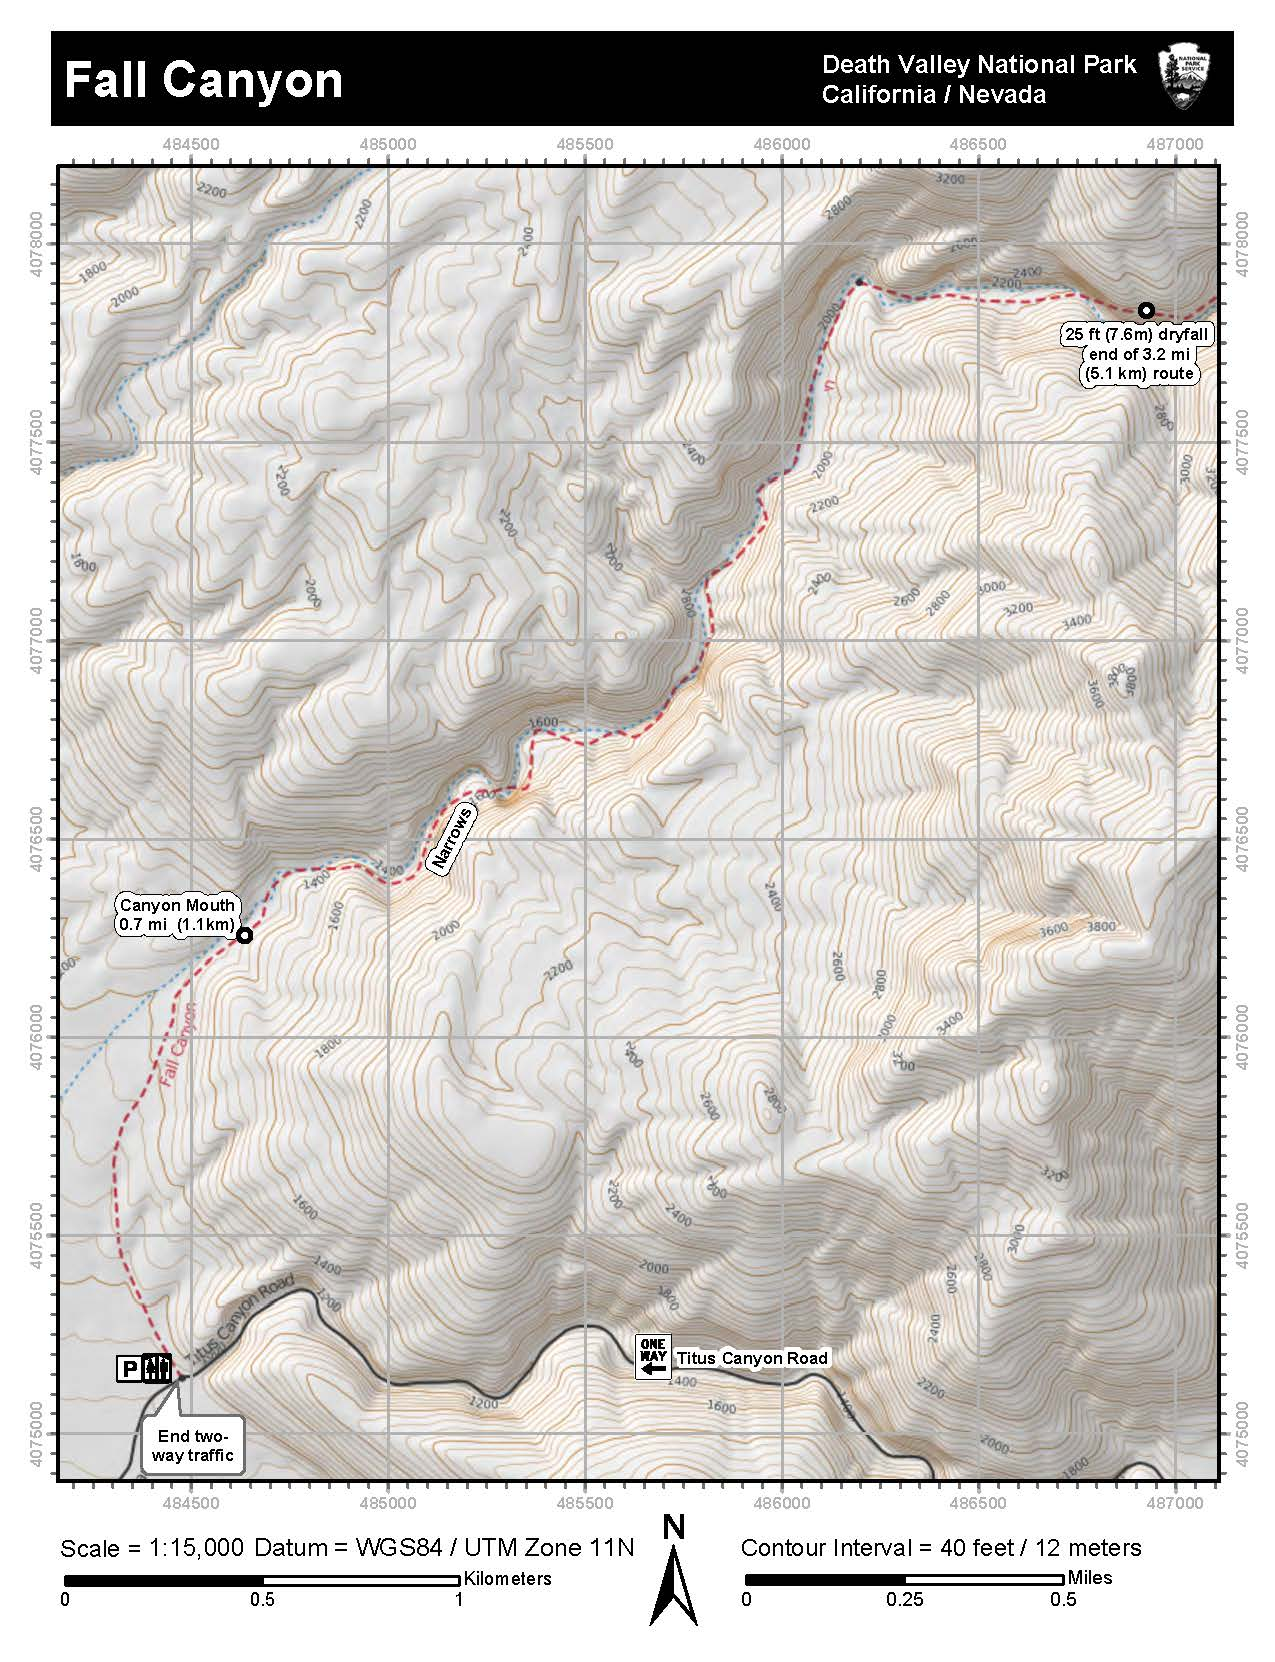 Topographic Map Of Fall Canyon Death Valley National Park